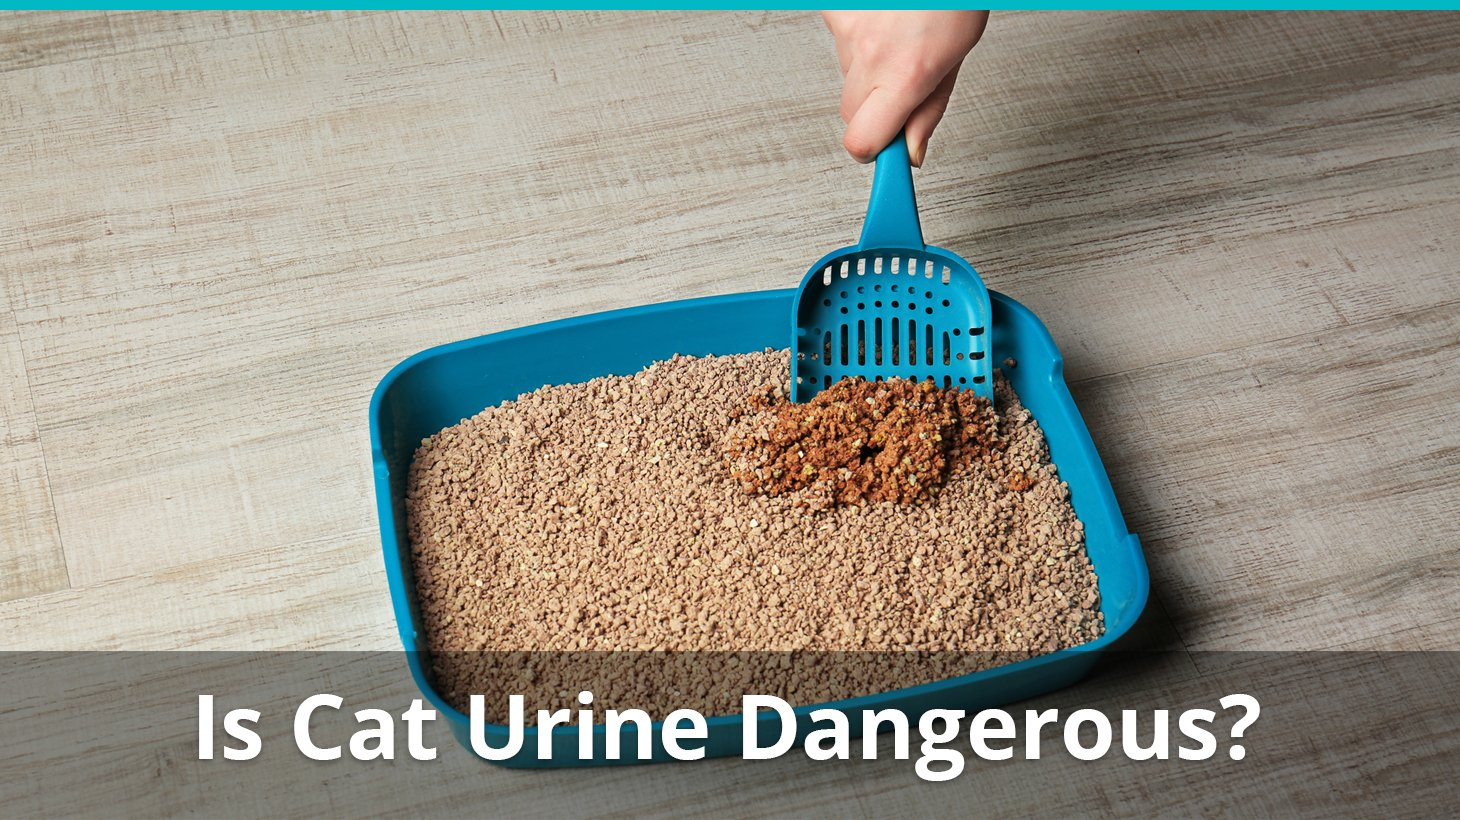 Dangers Of Cat Urine: Fumes, Toxicity, Allergies, And Health